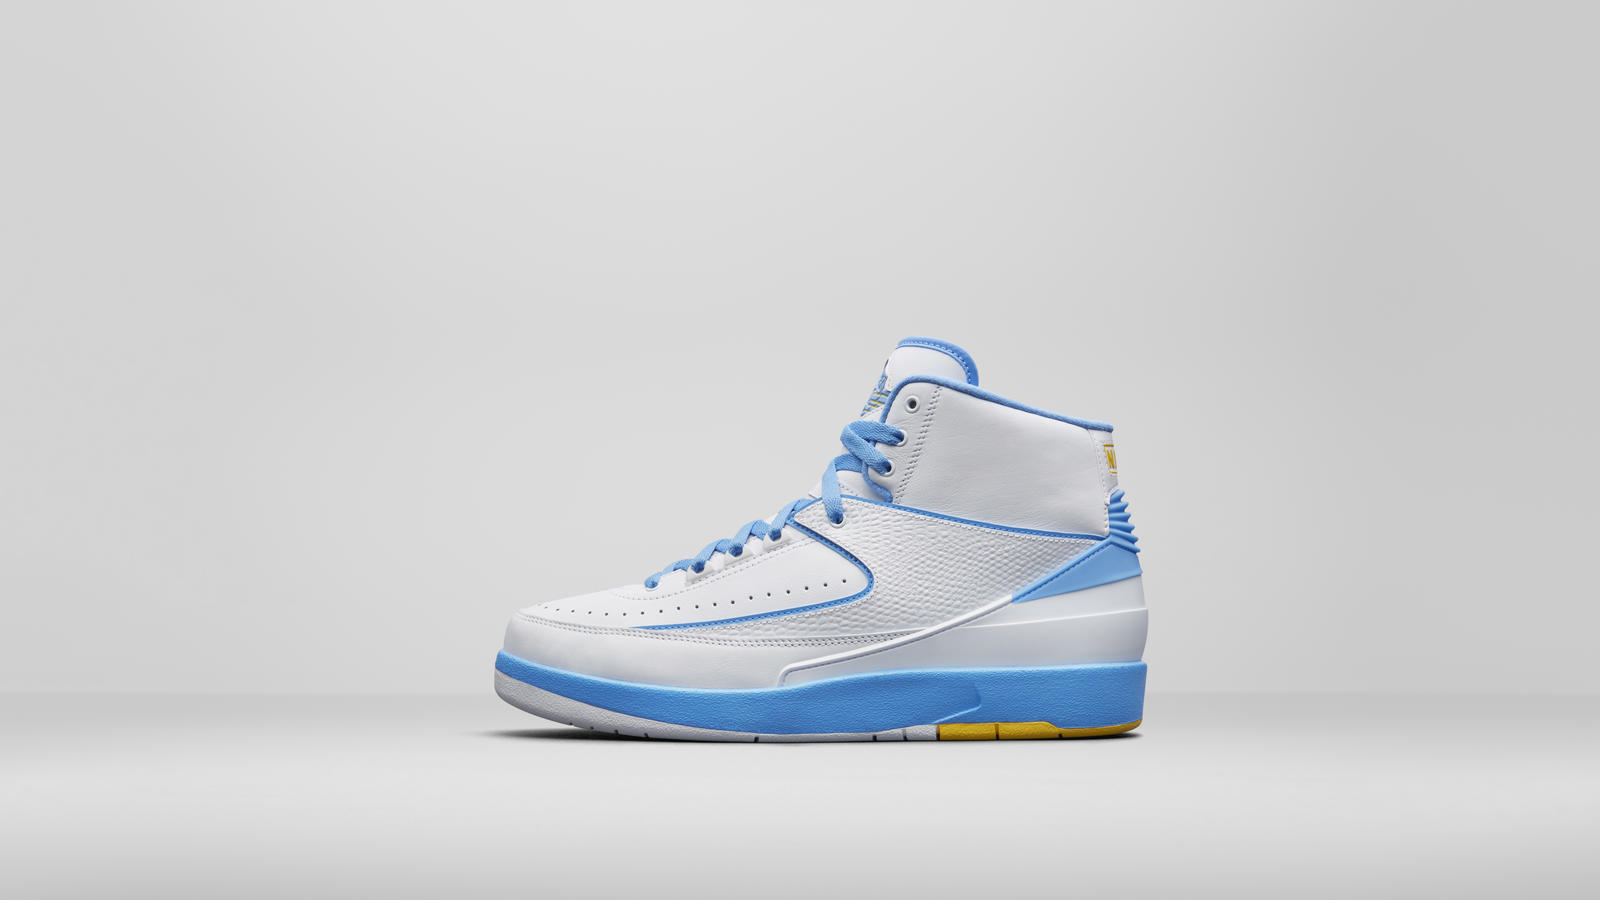 low priced 96581 404a3 The Air Jordan 2 'Melo' Release Date is Official - WearTesters